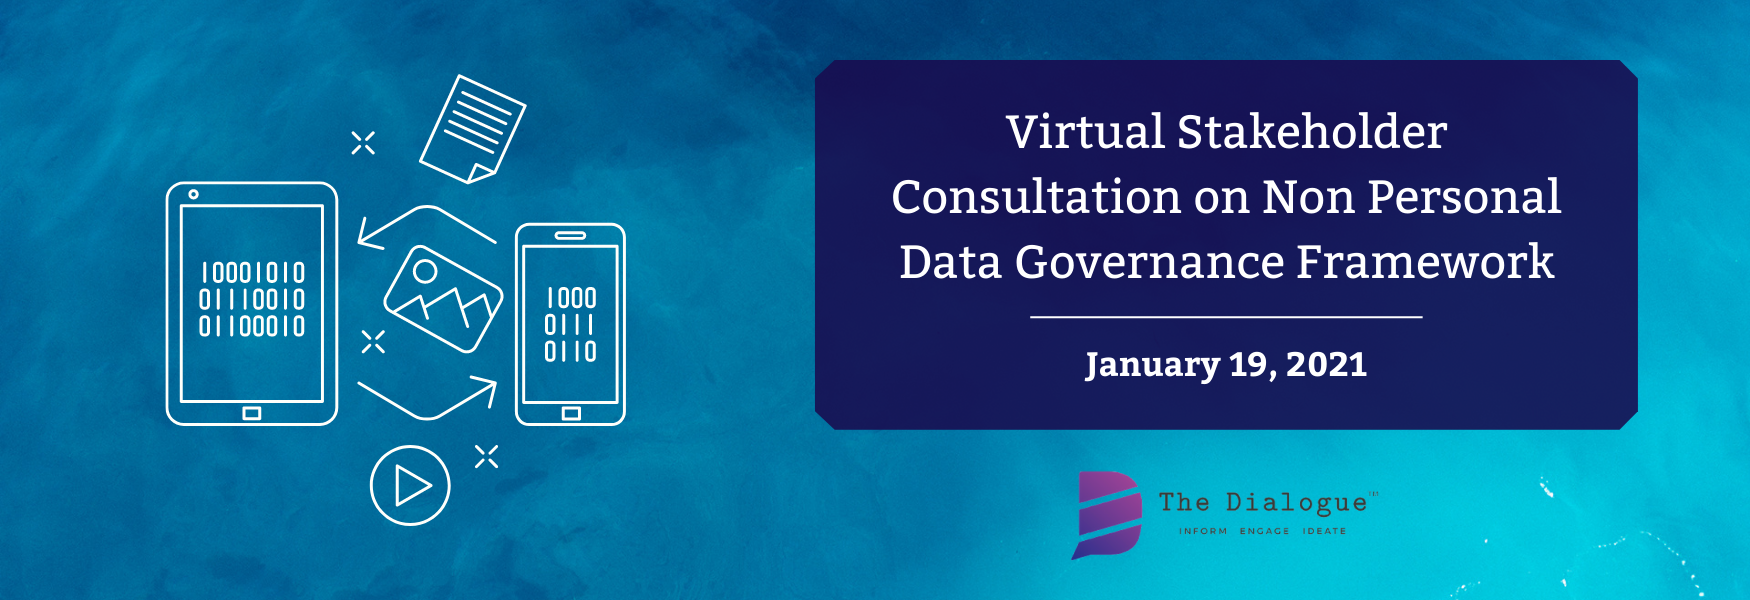 Virtual Stakeholder Consultation on Non Personal Data Governance Framework